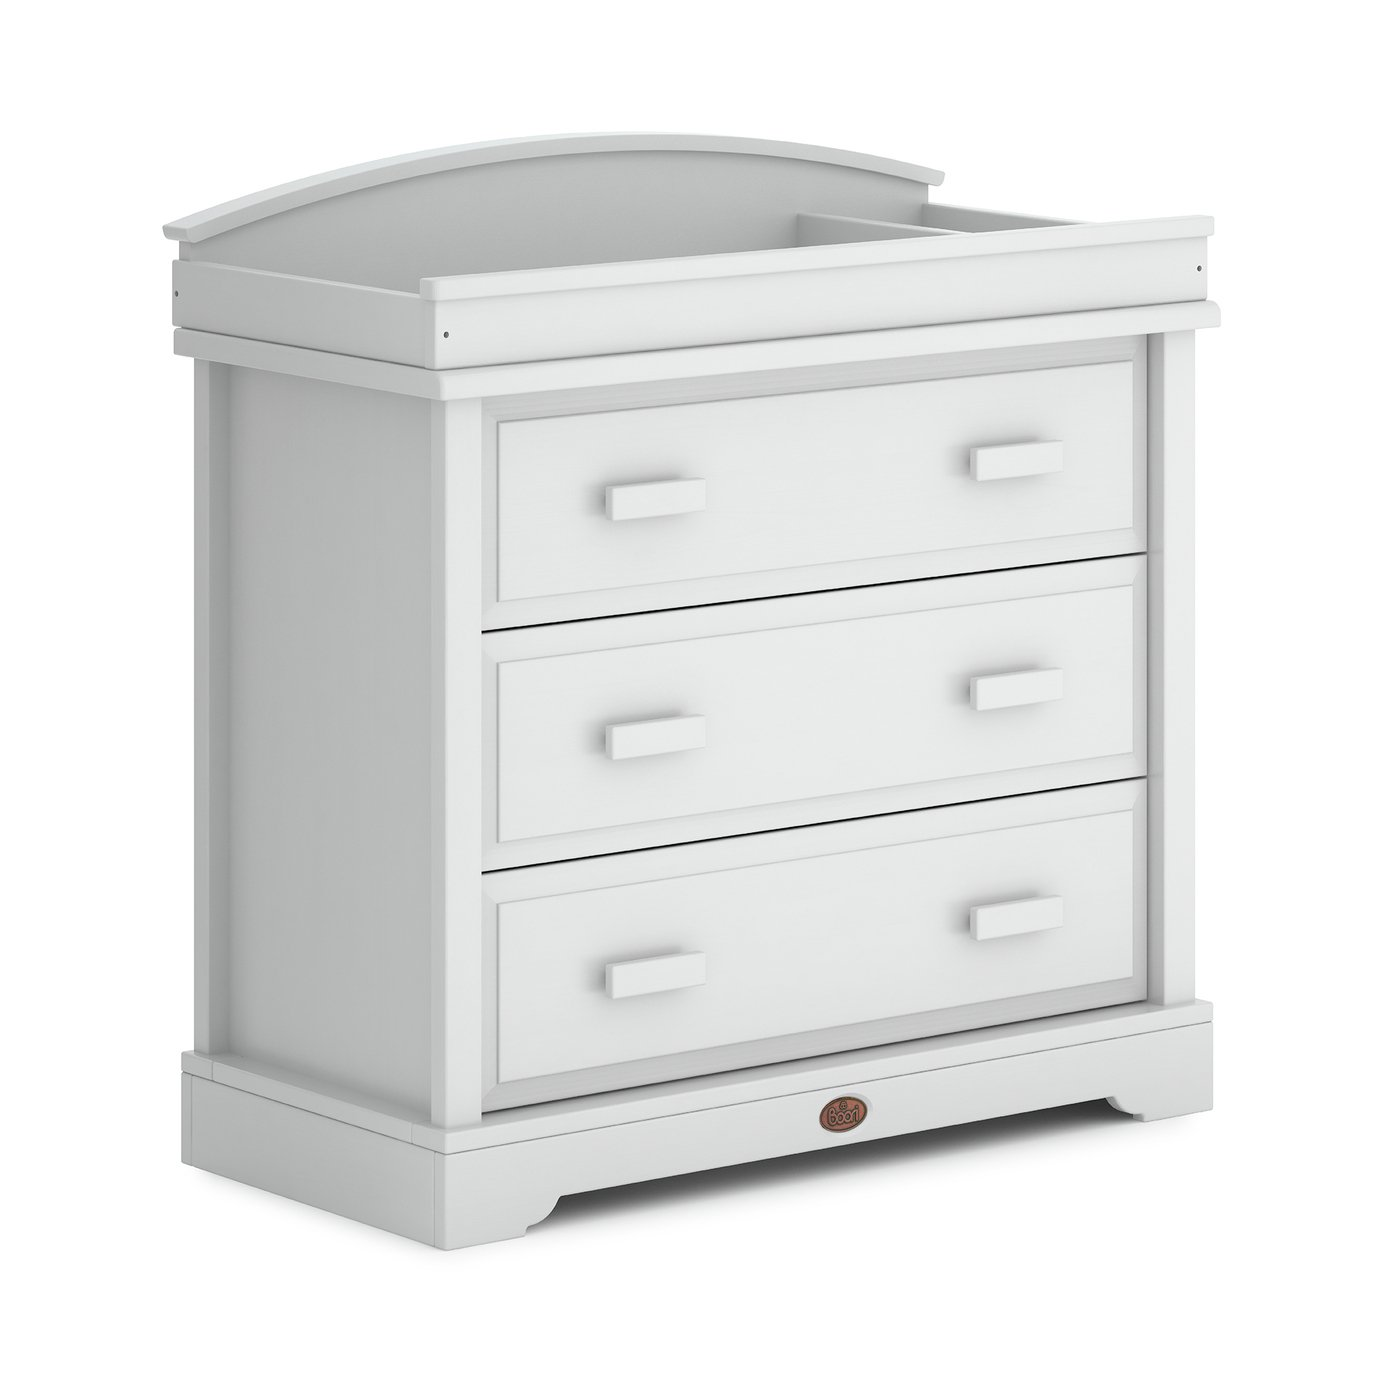 Boori Dresser and Changing Station - White